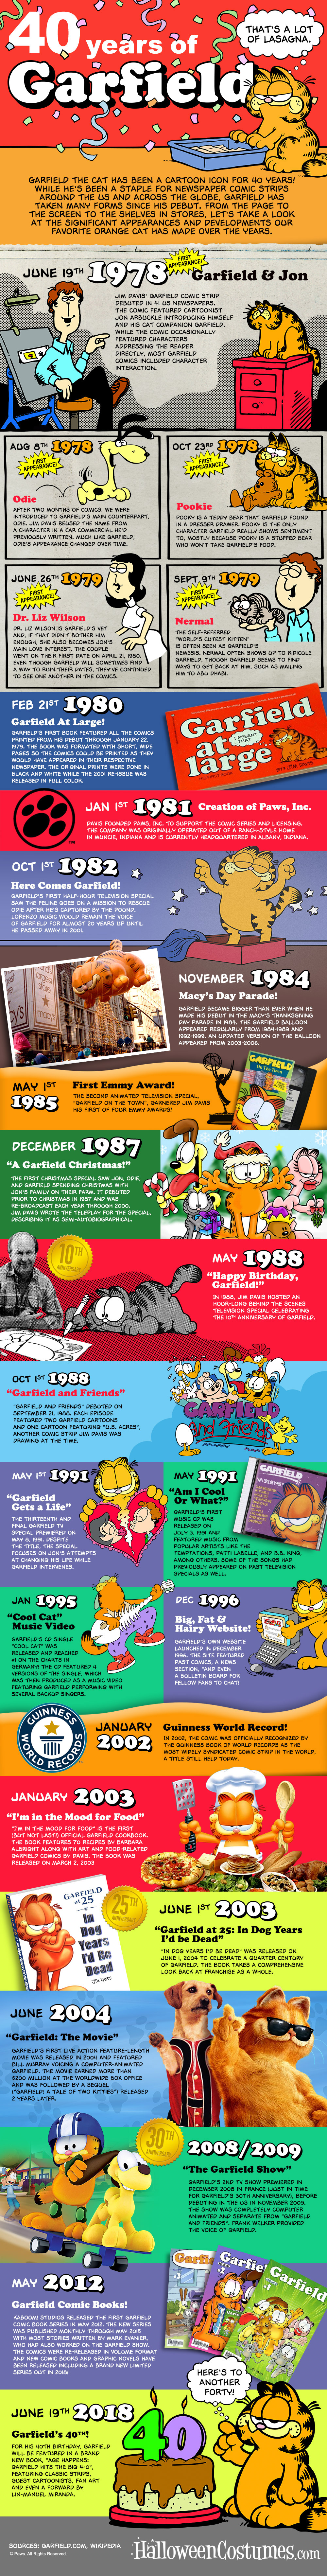 Garfield 40th Anniversary Infographic